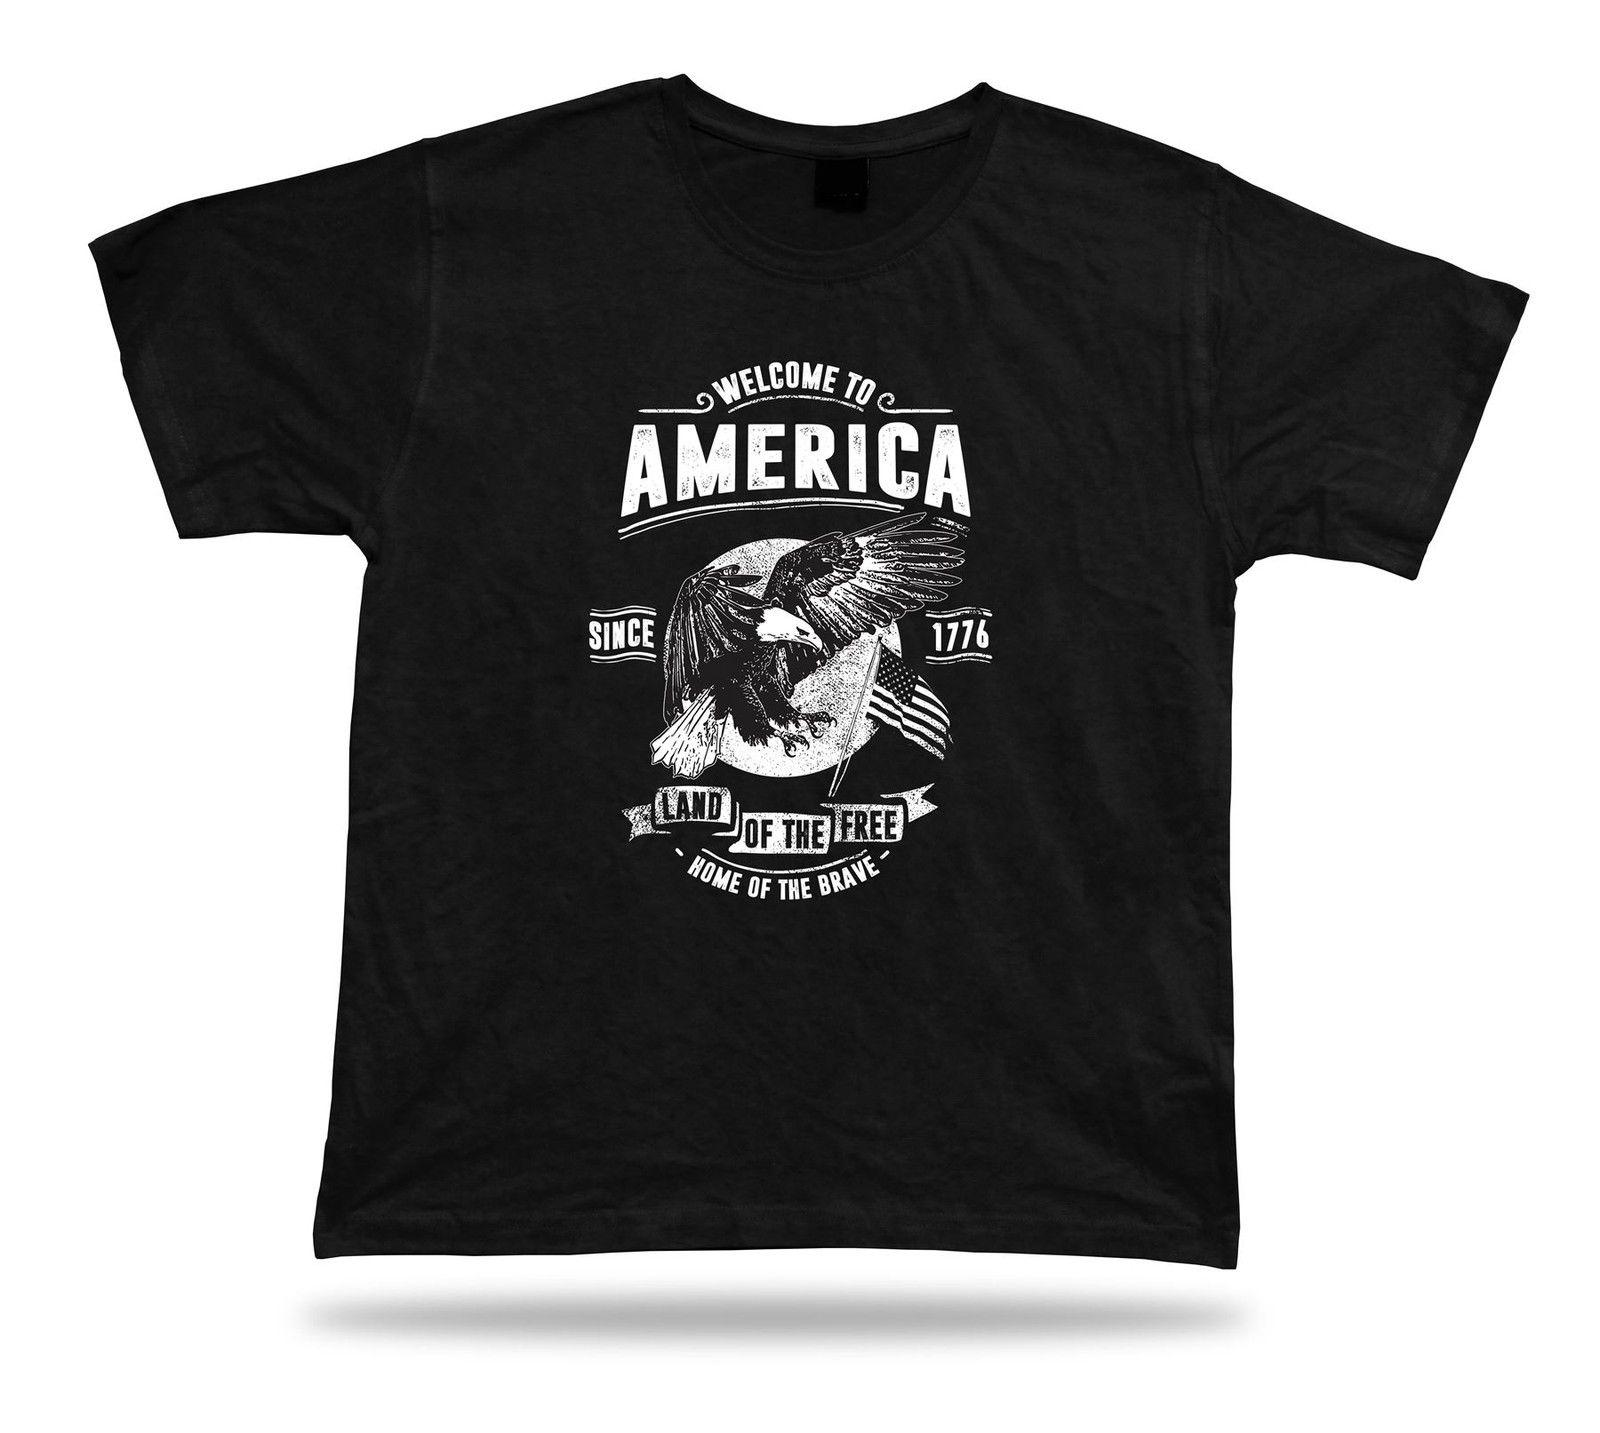 Tshirt Tee Shirt Birthday Gift Idea Welcome To America Freedom USA Retro Style Online With 1854 Piece On Coolteess Store